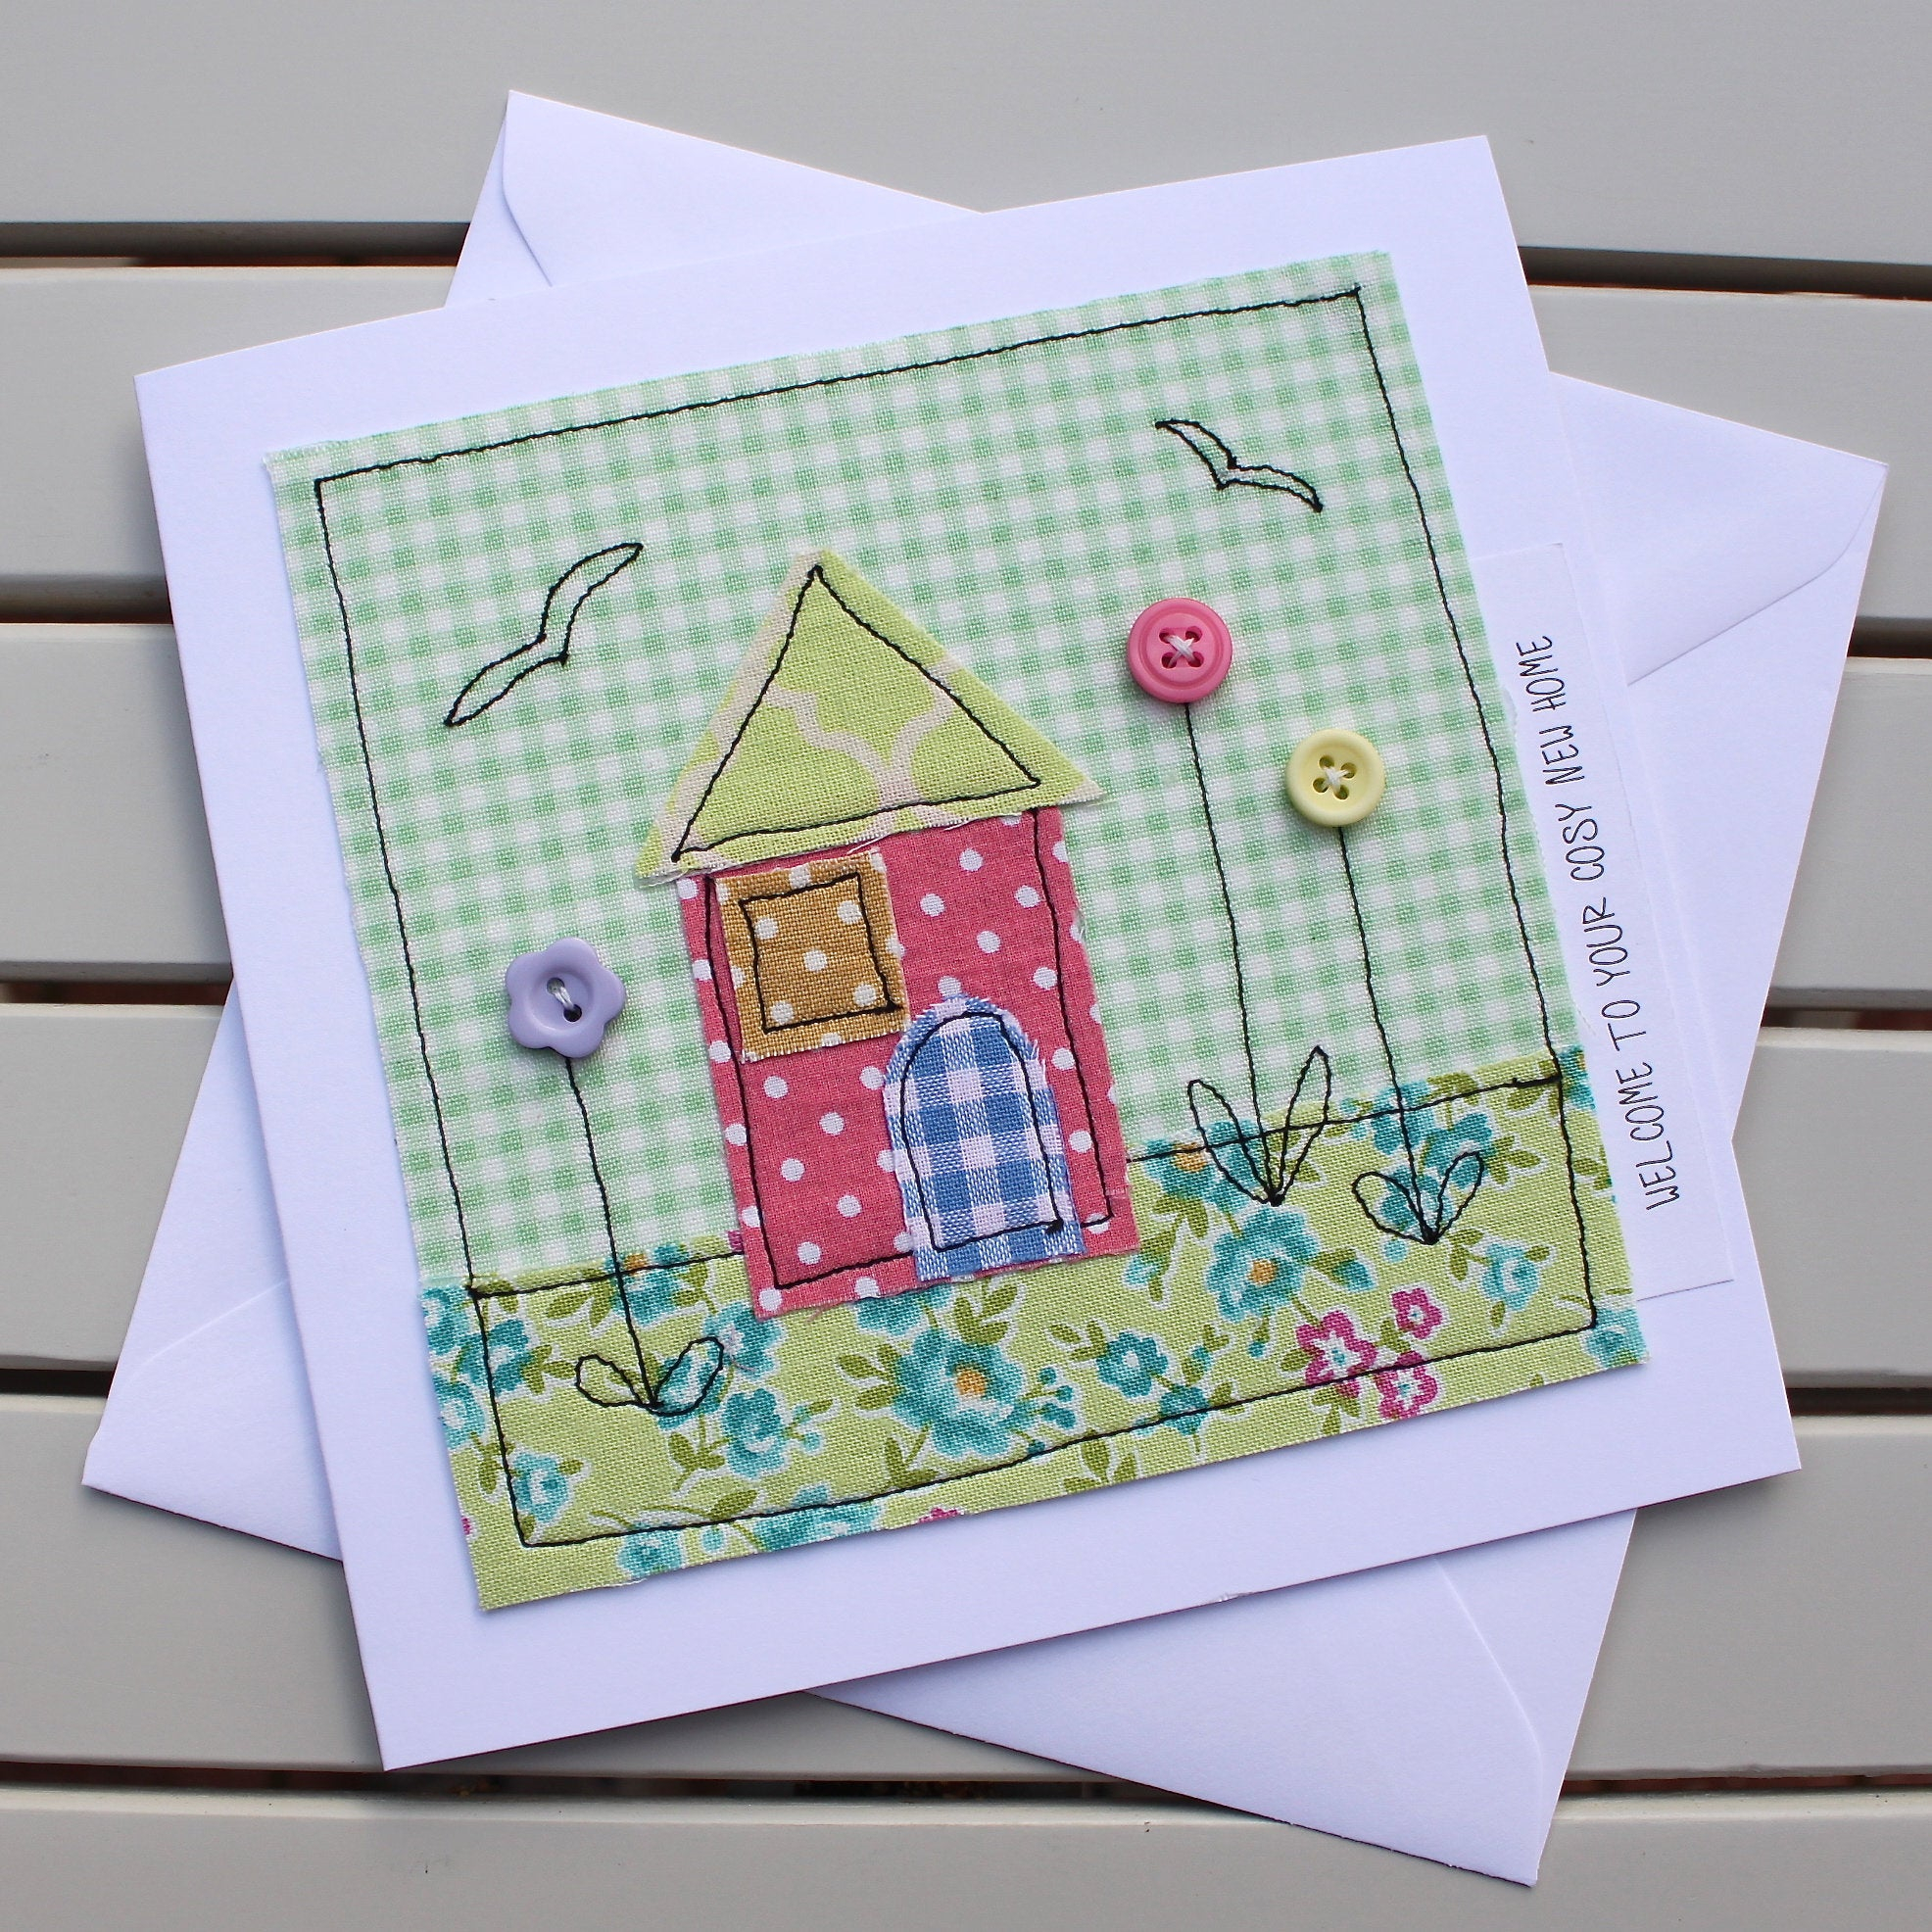 Paper Embroidery Cards Free Patterns New Home Card Handmade Original Fabric Embroidered Card